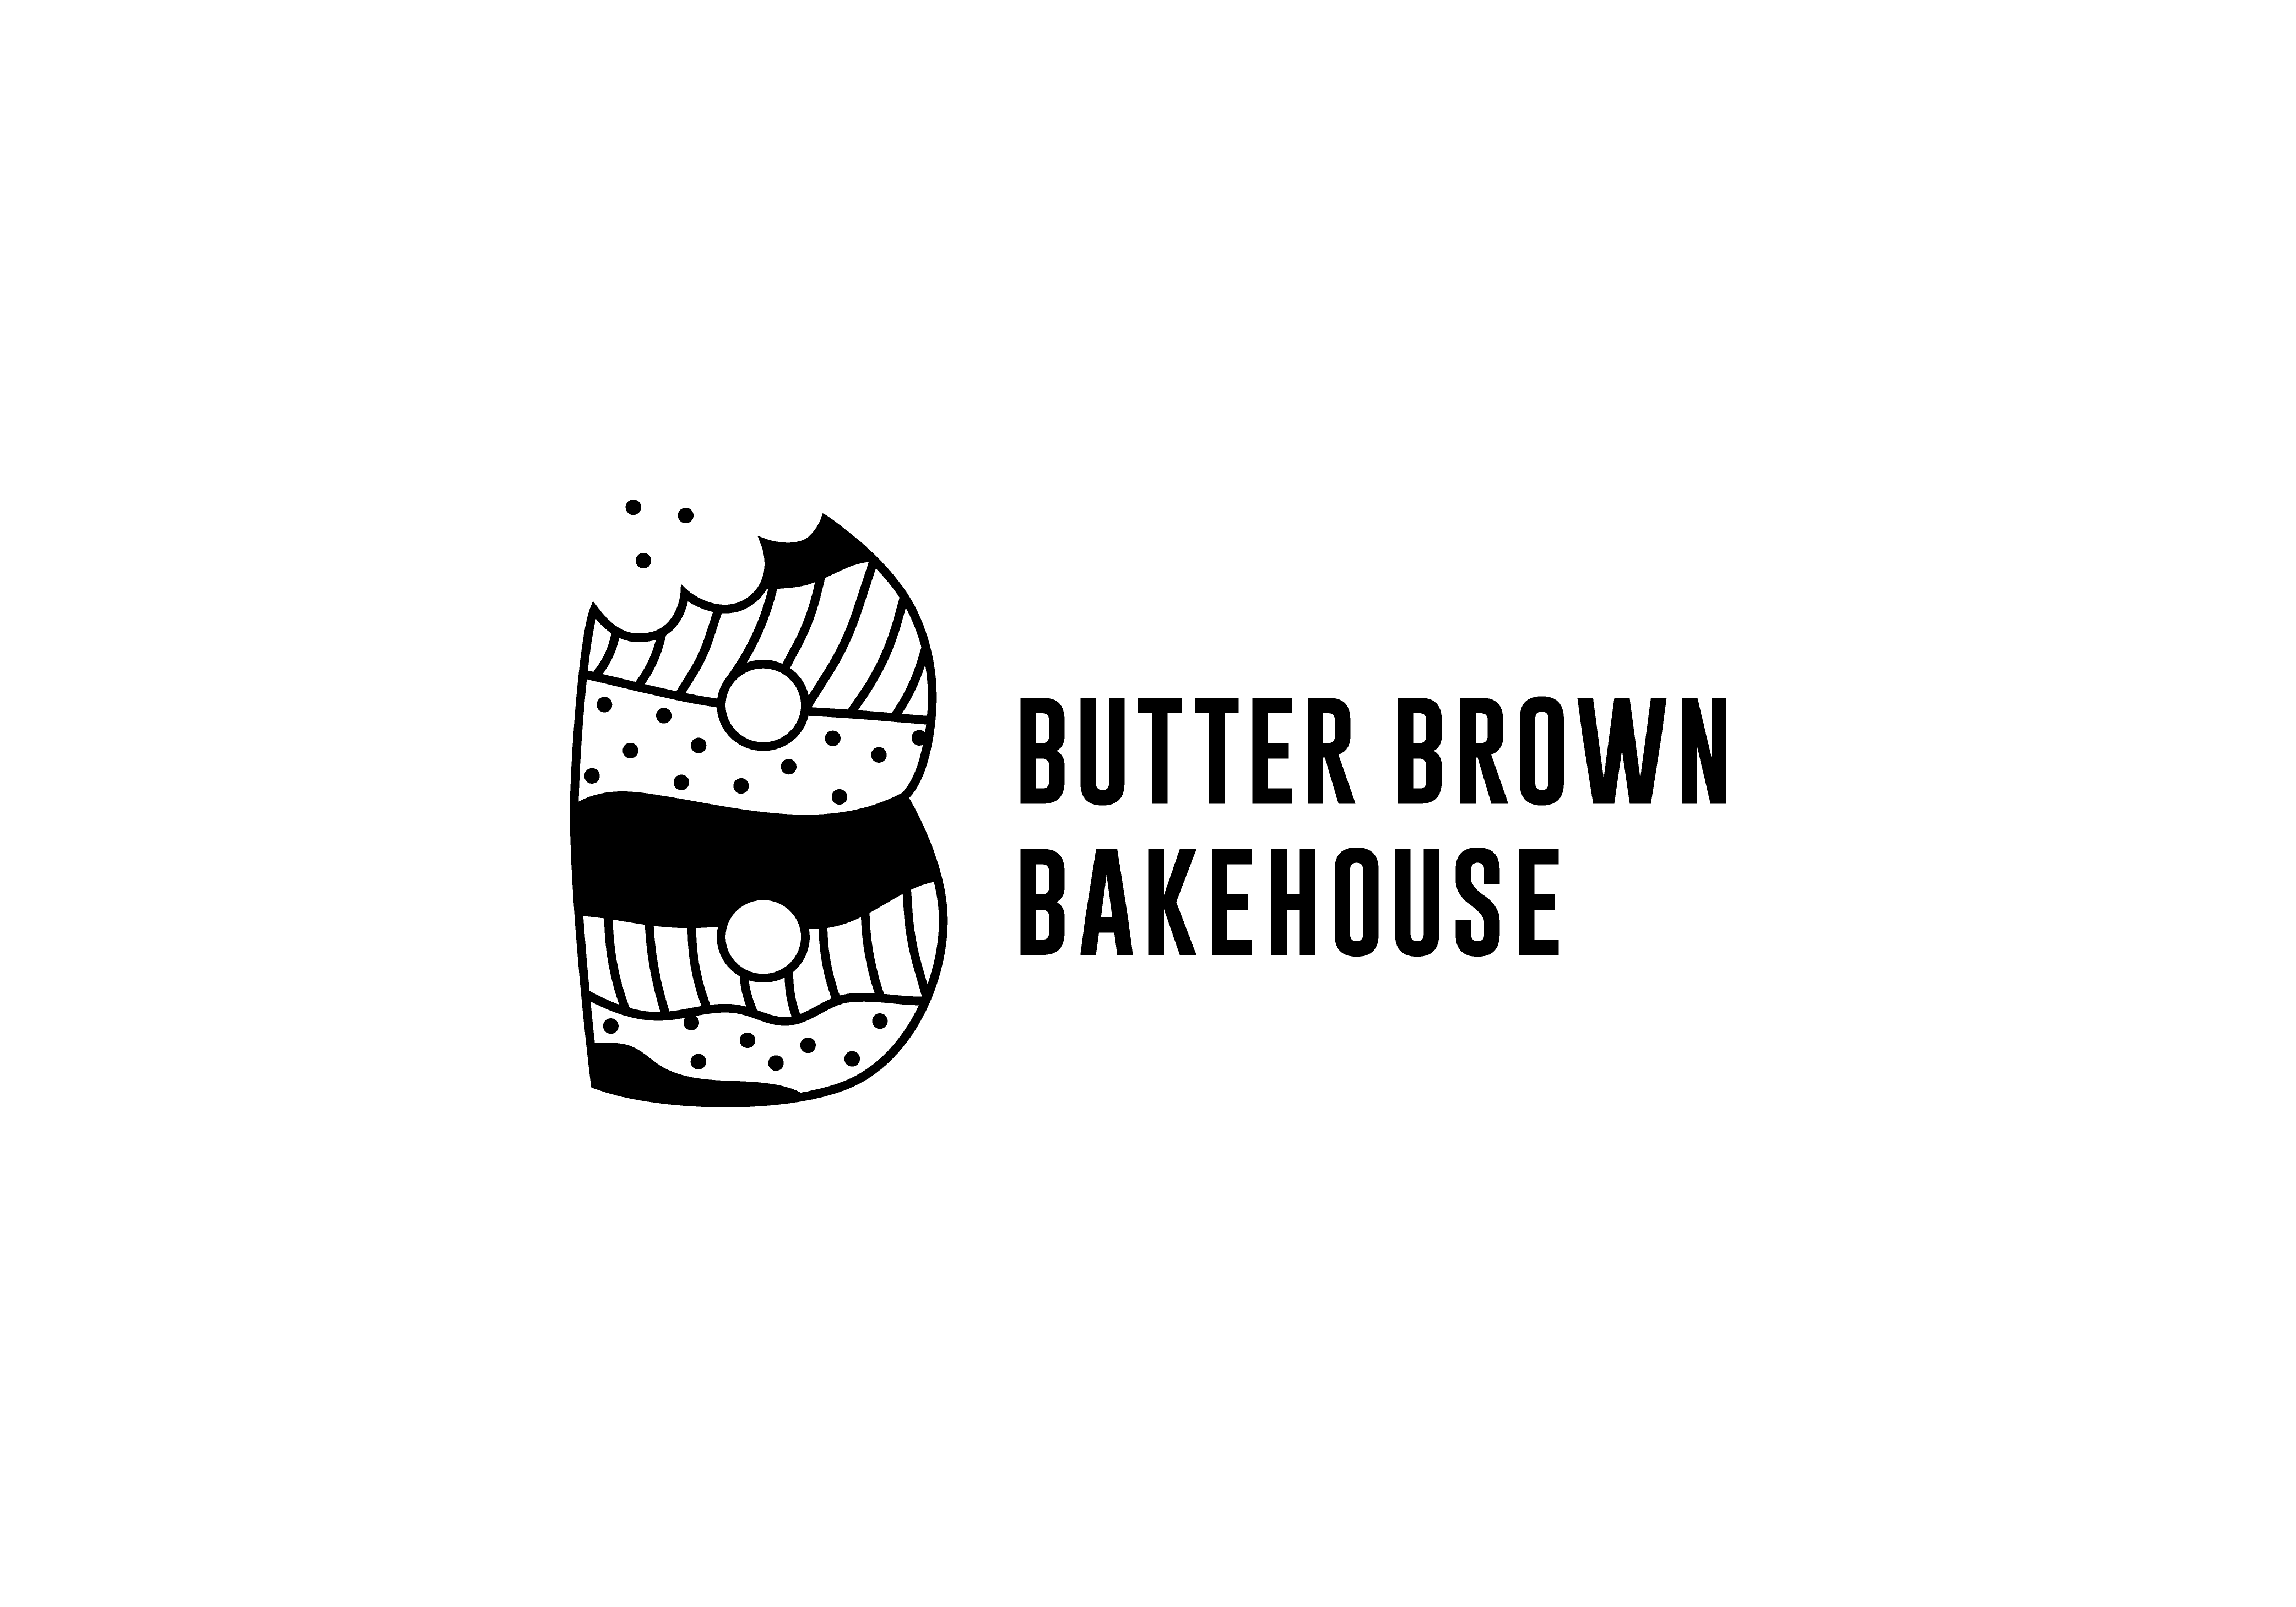 Butter Brown Bakehouse